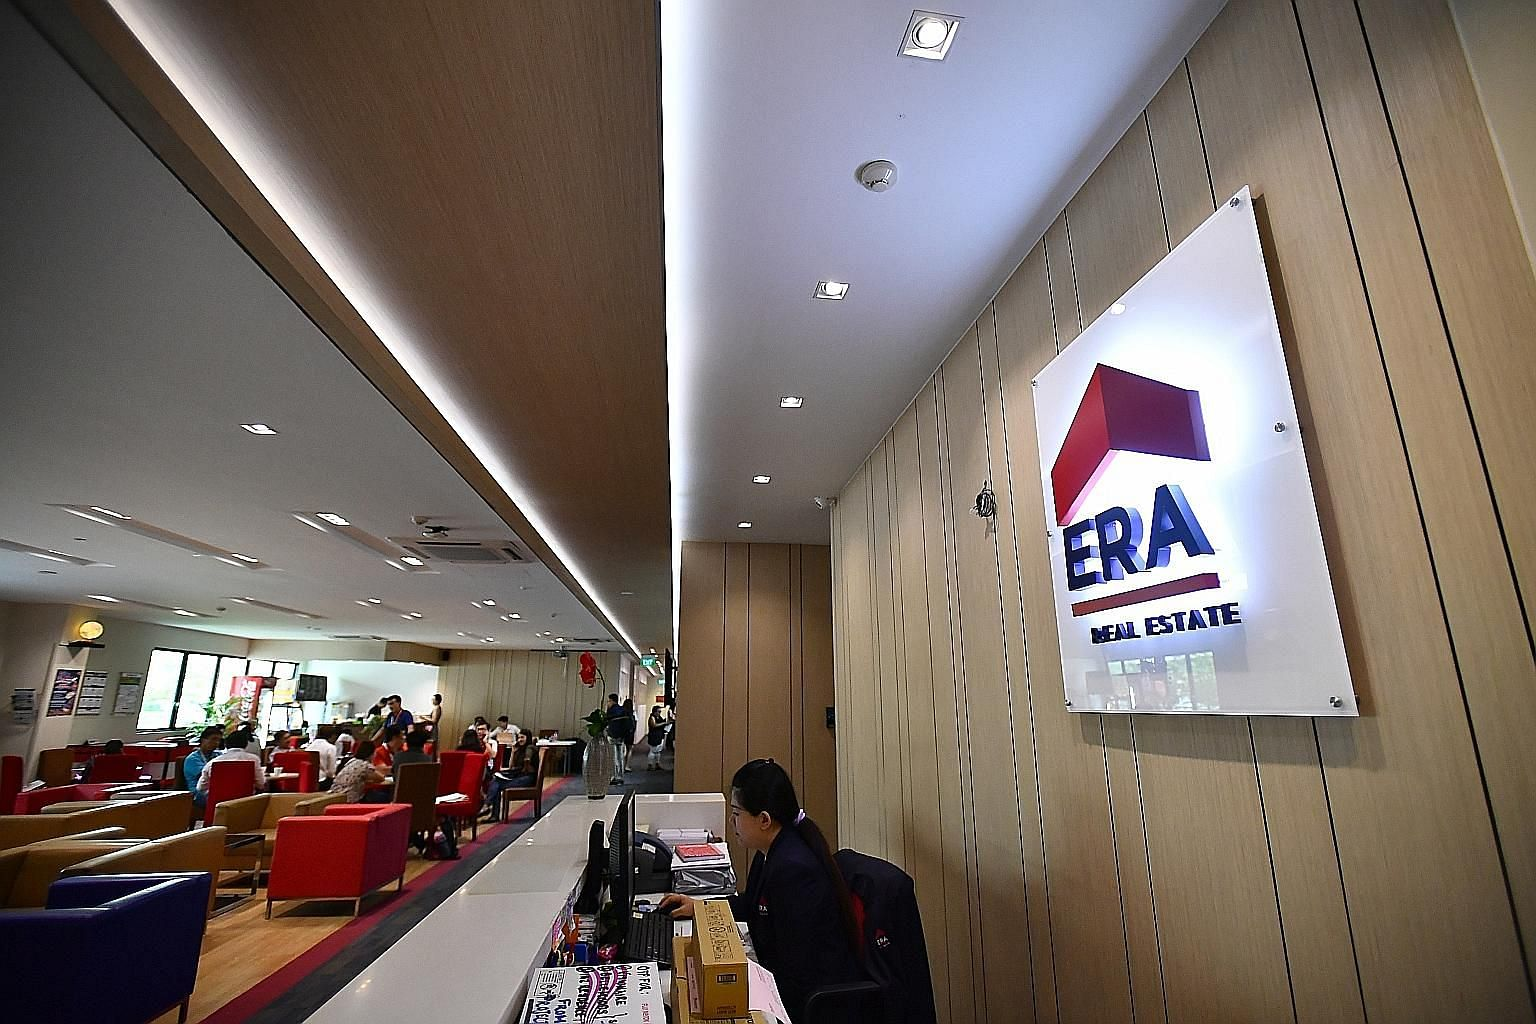 The first-quarter net profit of Apac Realty, which operates under the ERA brand, was $4 million, doubling from $1.9 million in the same period last year. The company intends to use the IPO proceeds to focus on regional expansion.